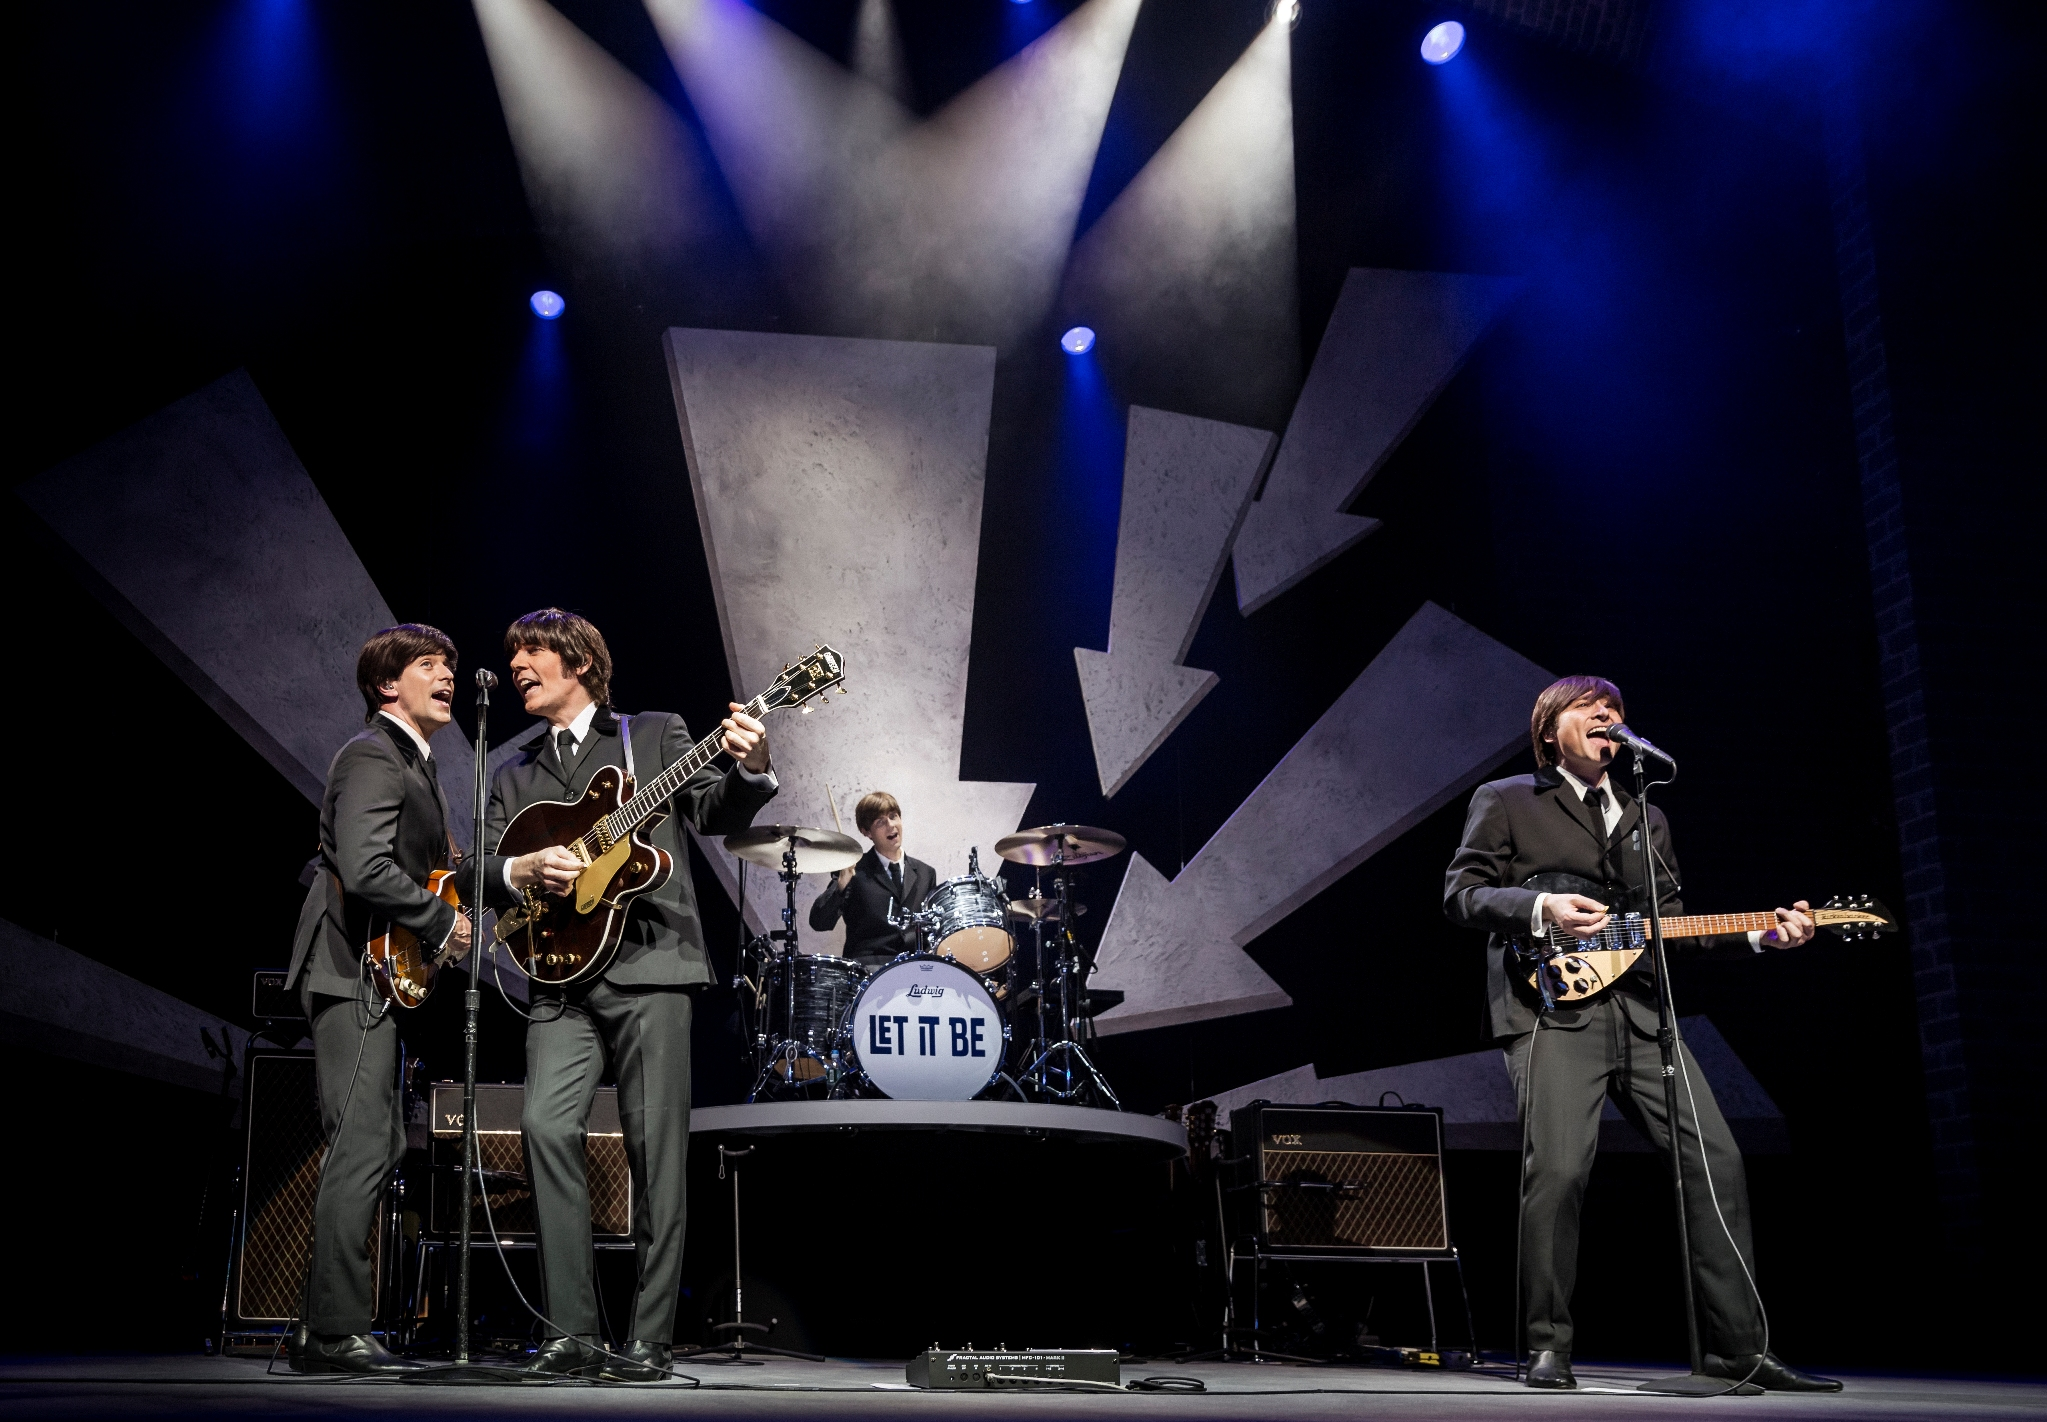 LET IT BE - THE BEATLES Trailers, Photos and Wallpapers